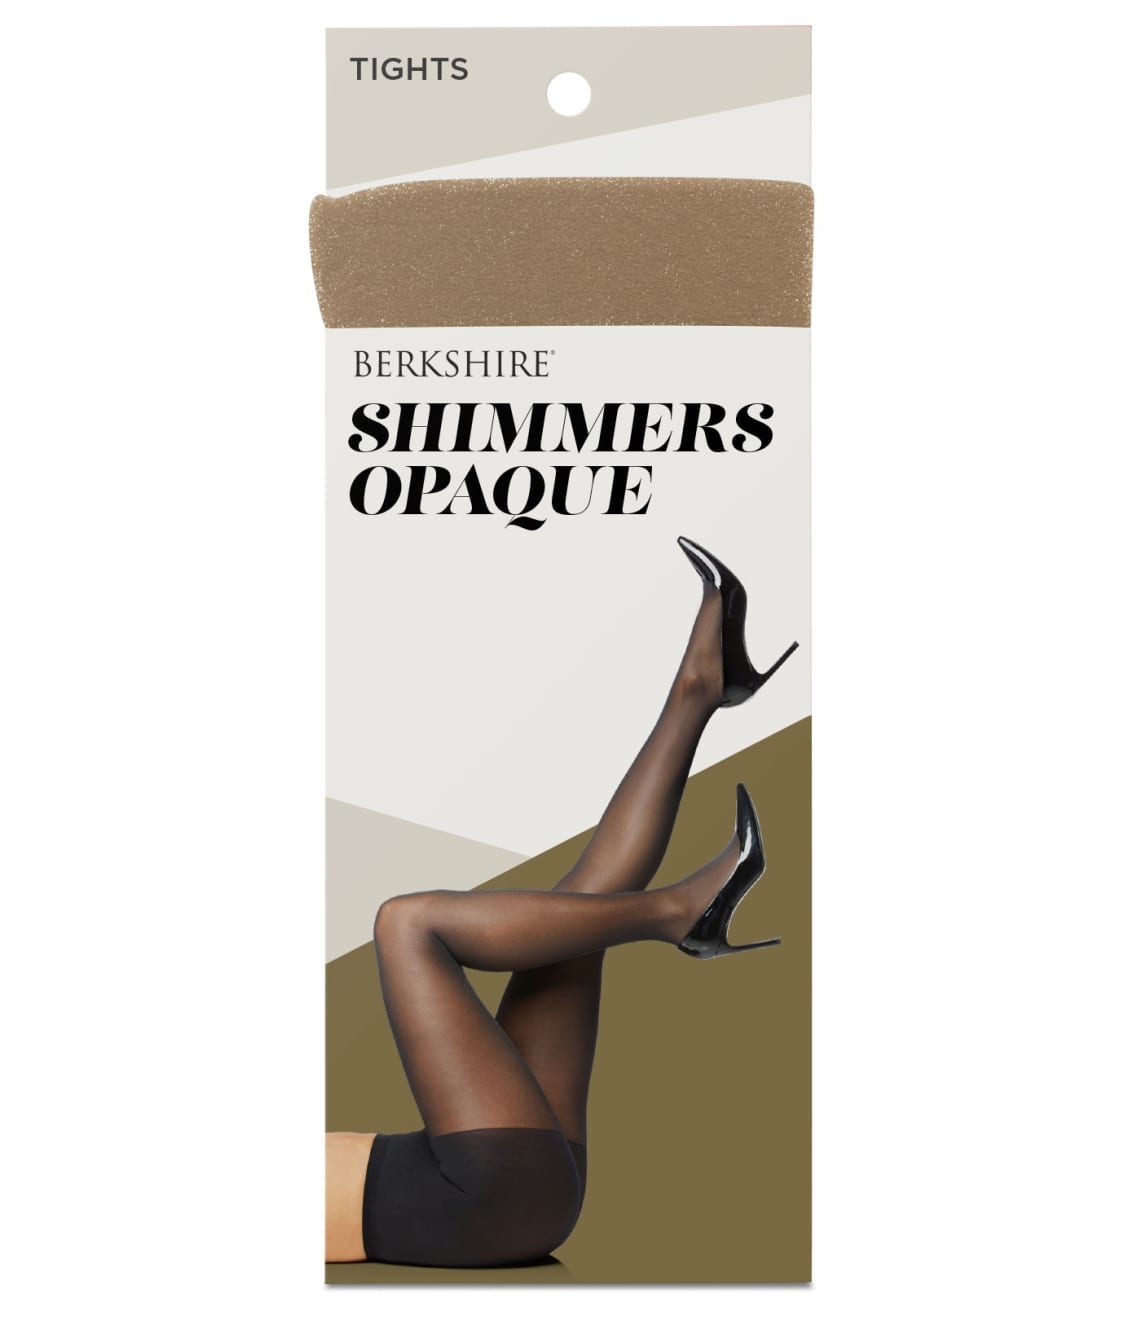 BN Berkshire Shimmers Ultra Sheer Control Top Tights Size 2 Ivory Wedding